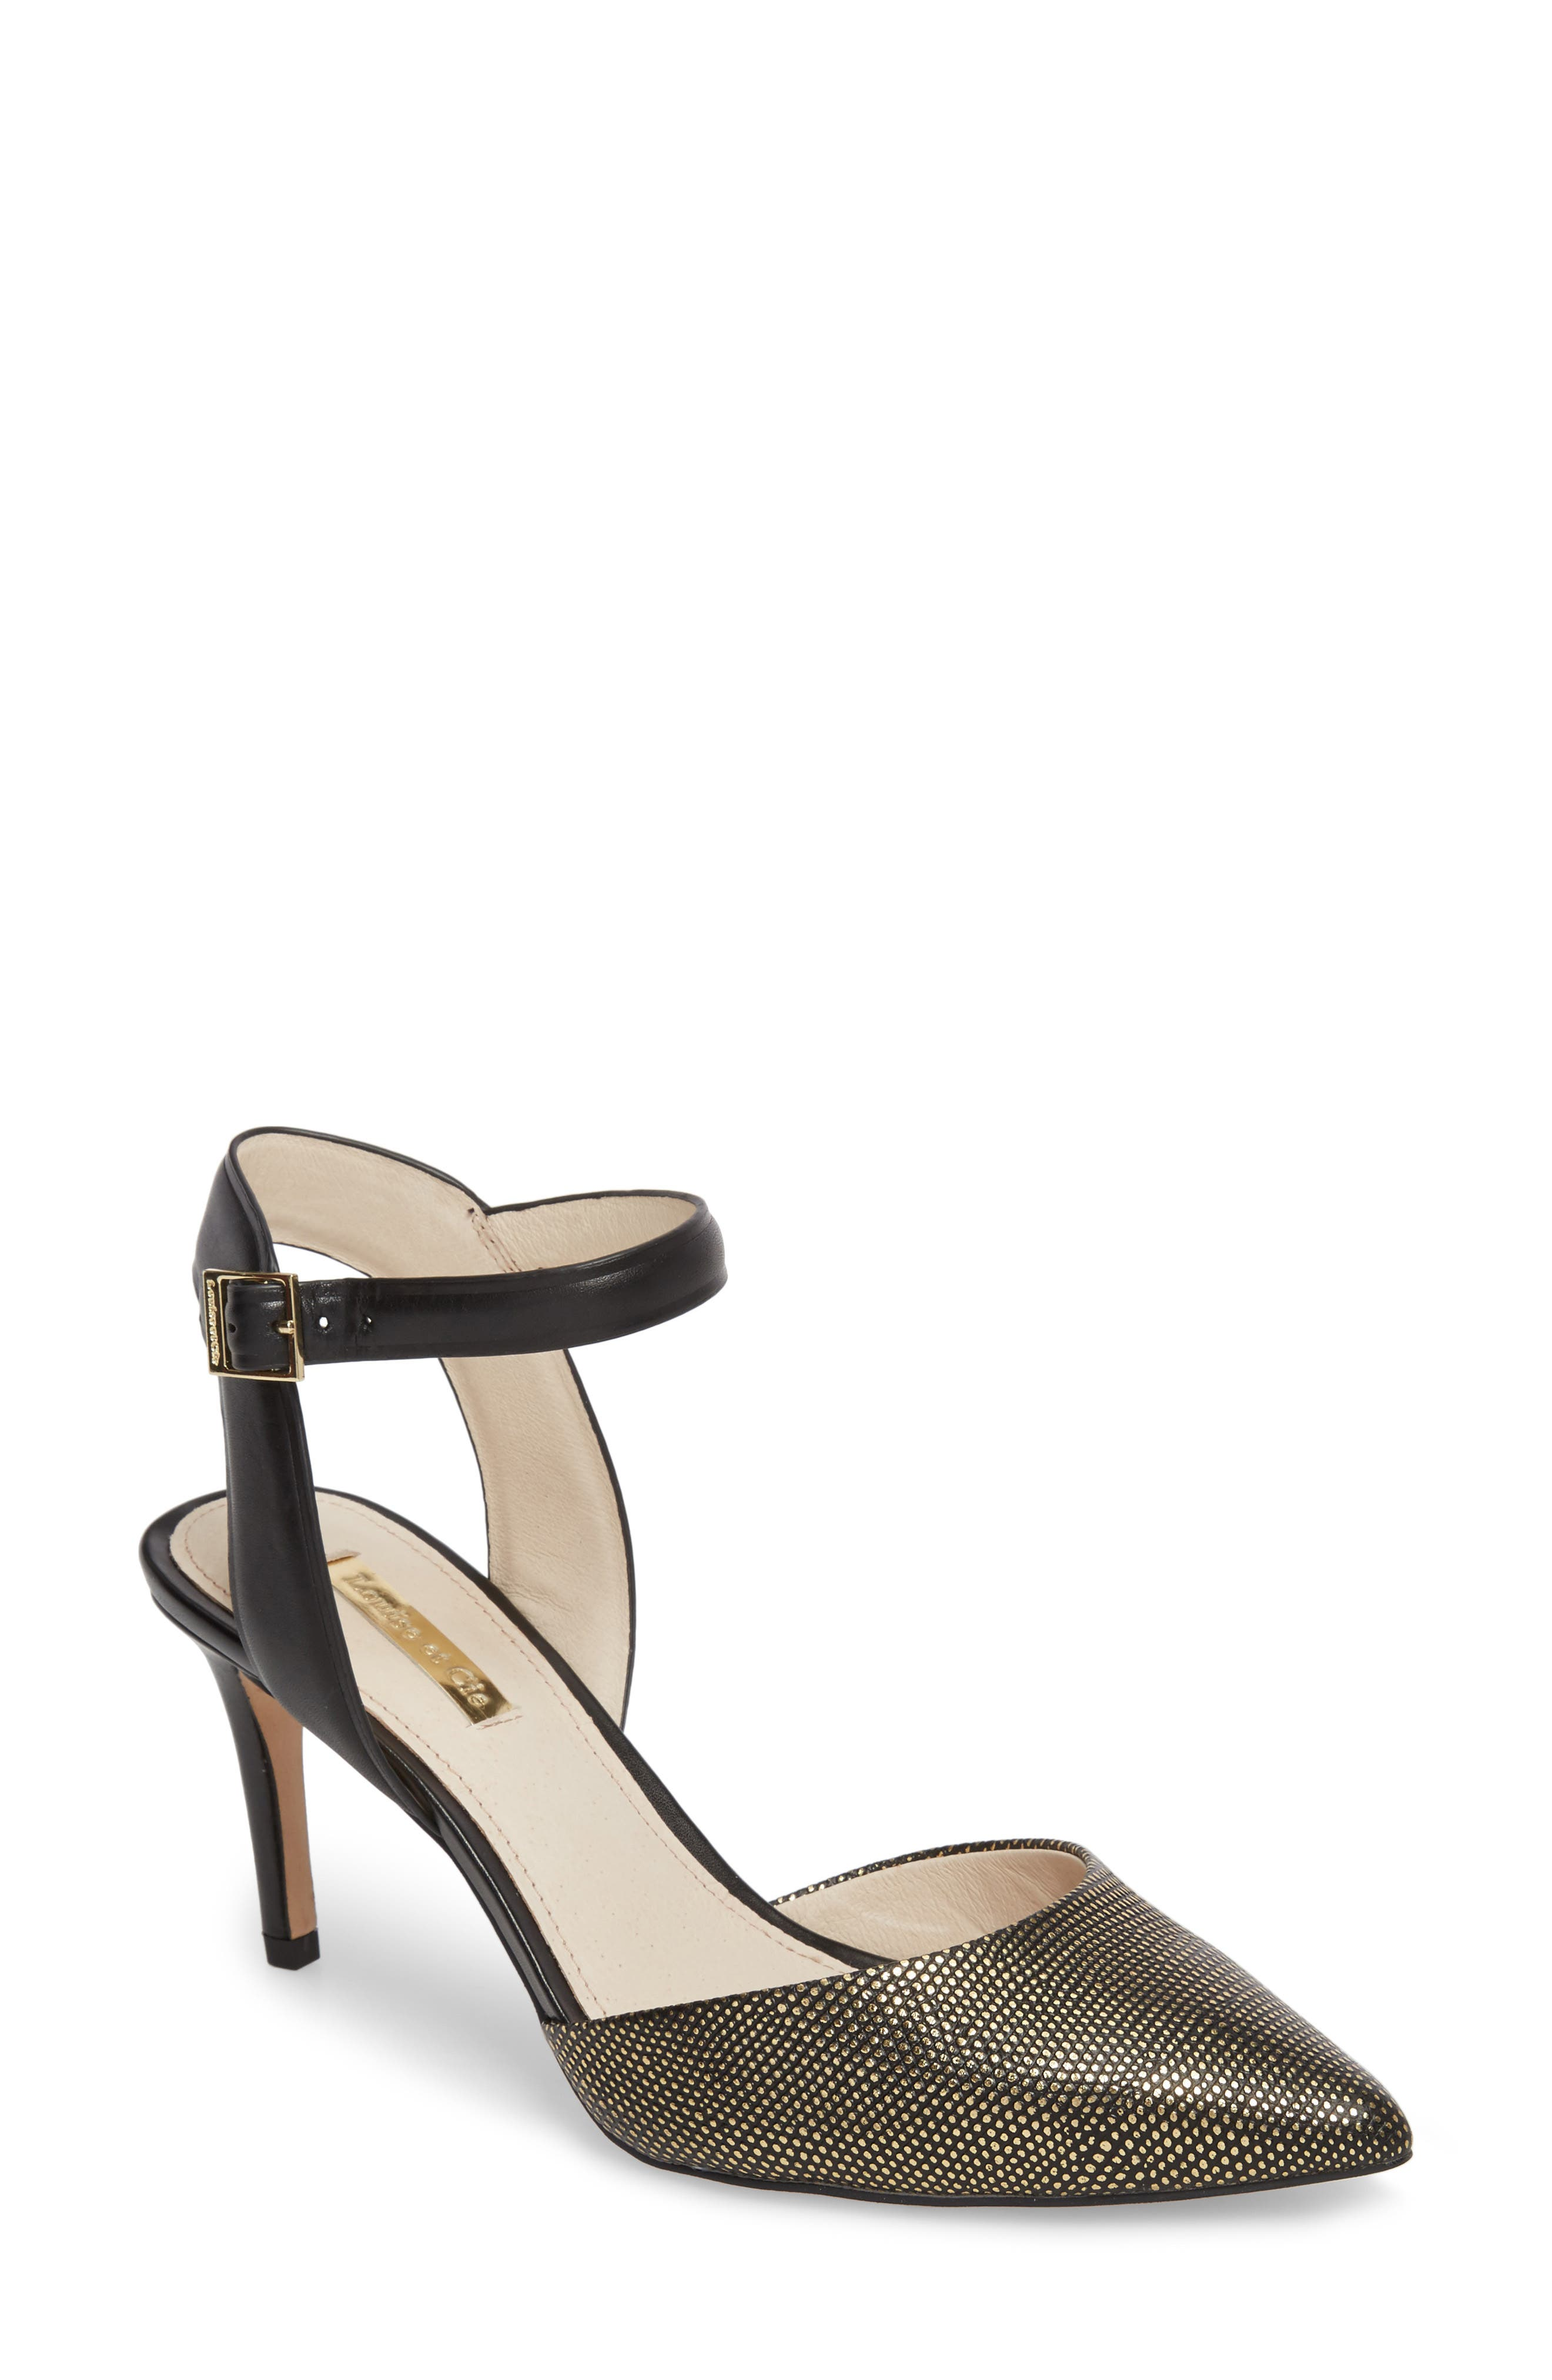 Kota Ankle Strap Pump,                             Main thumbnail 1, color,                             002